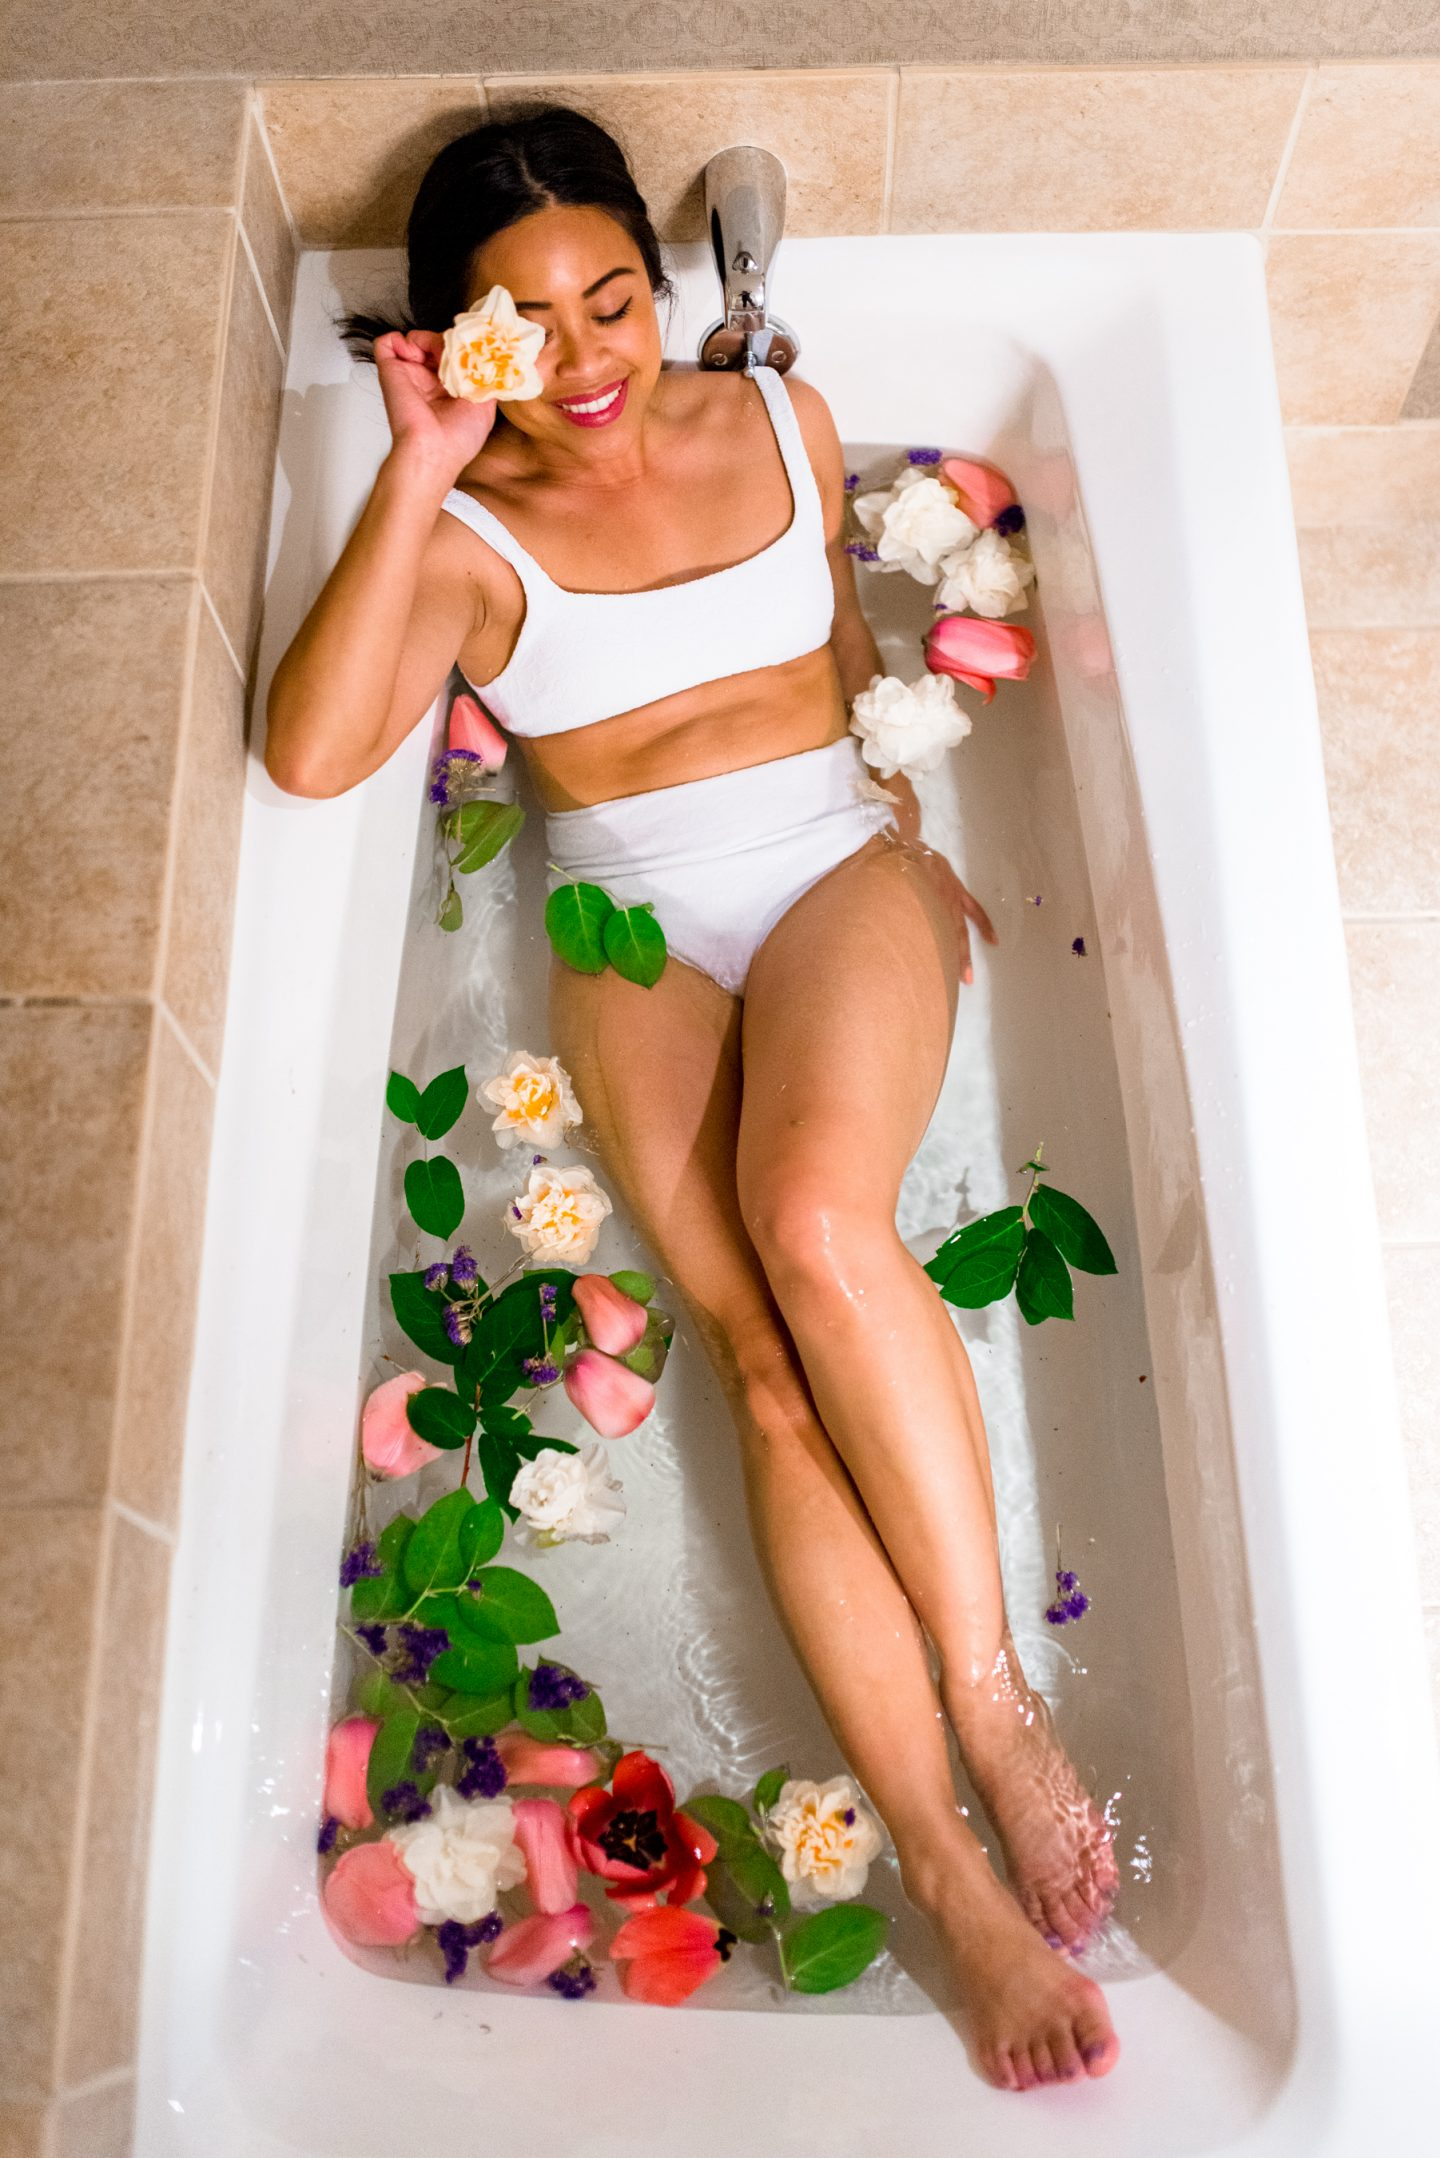 bathtub photo shoot ideas